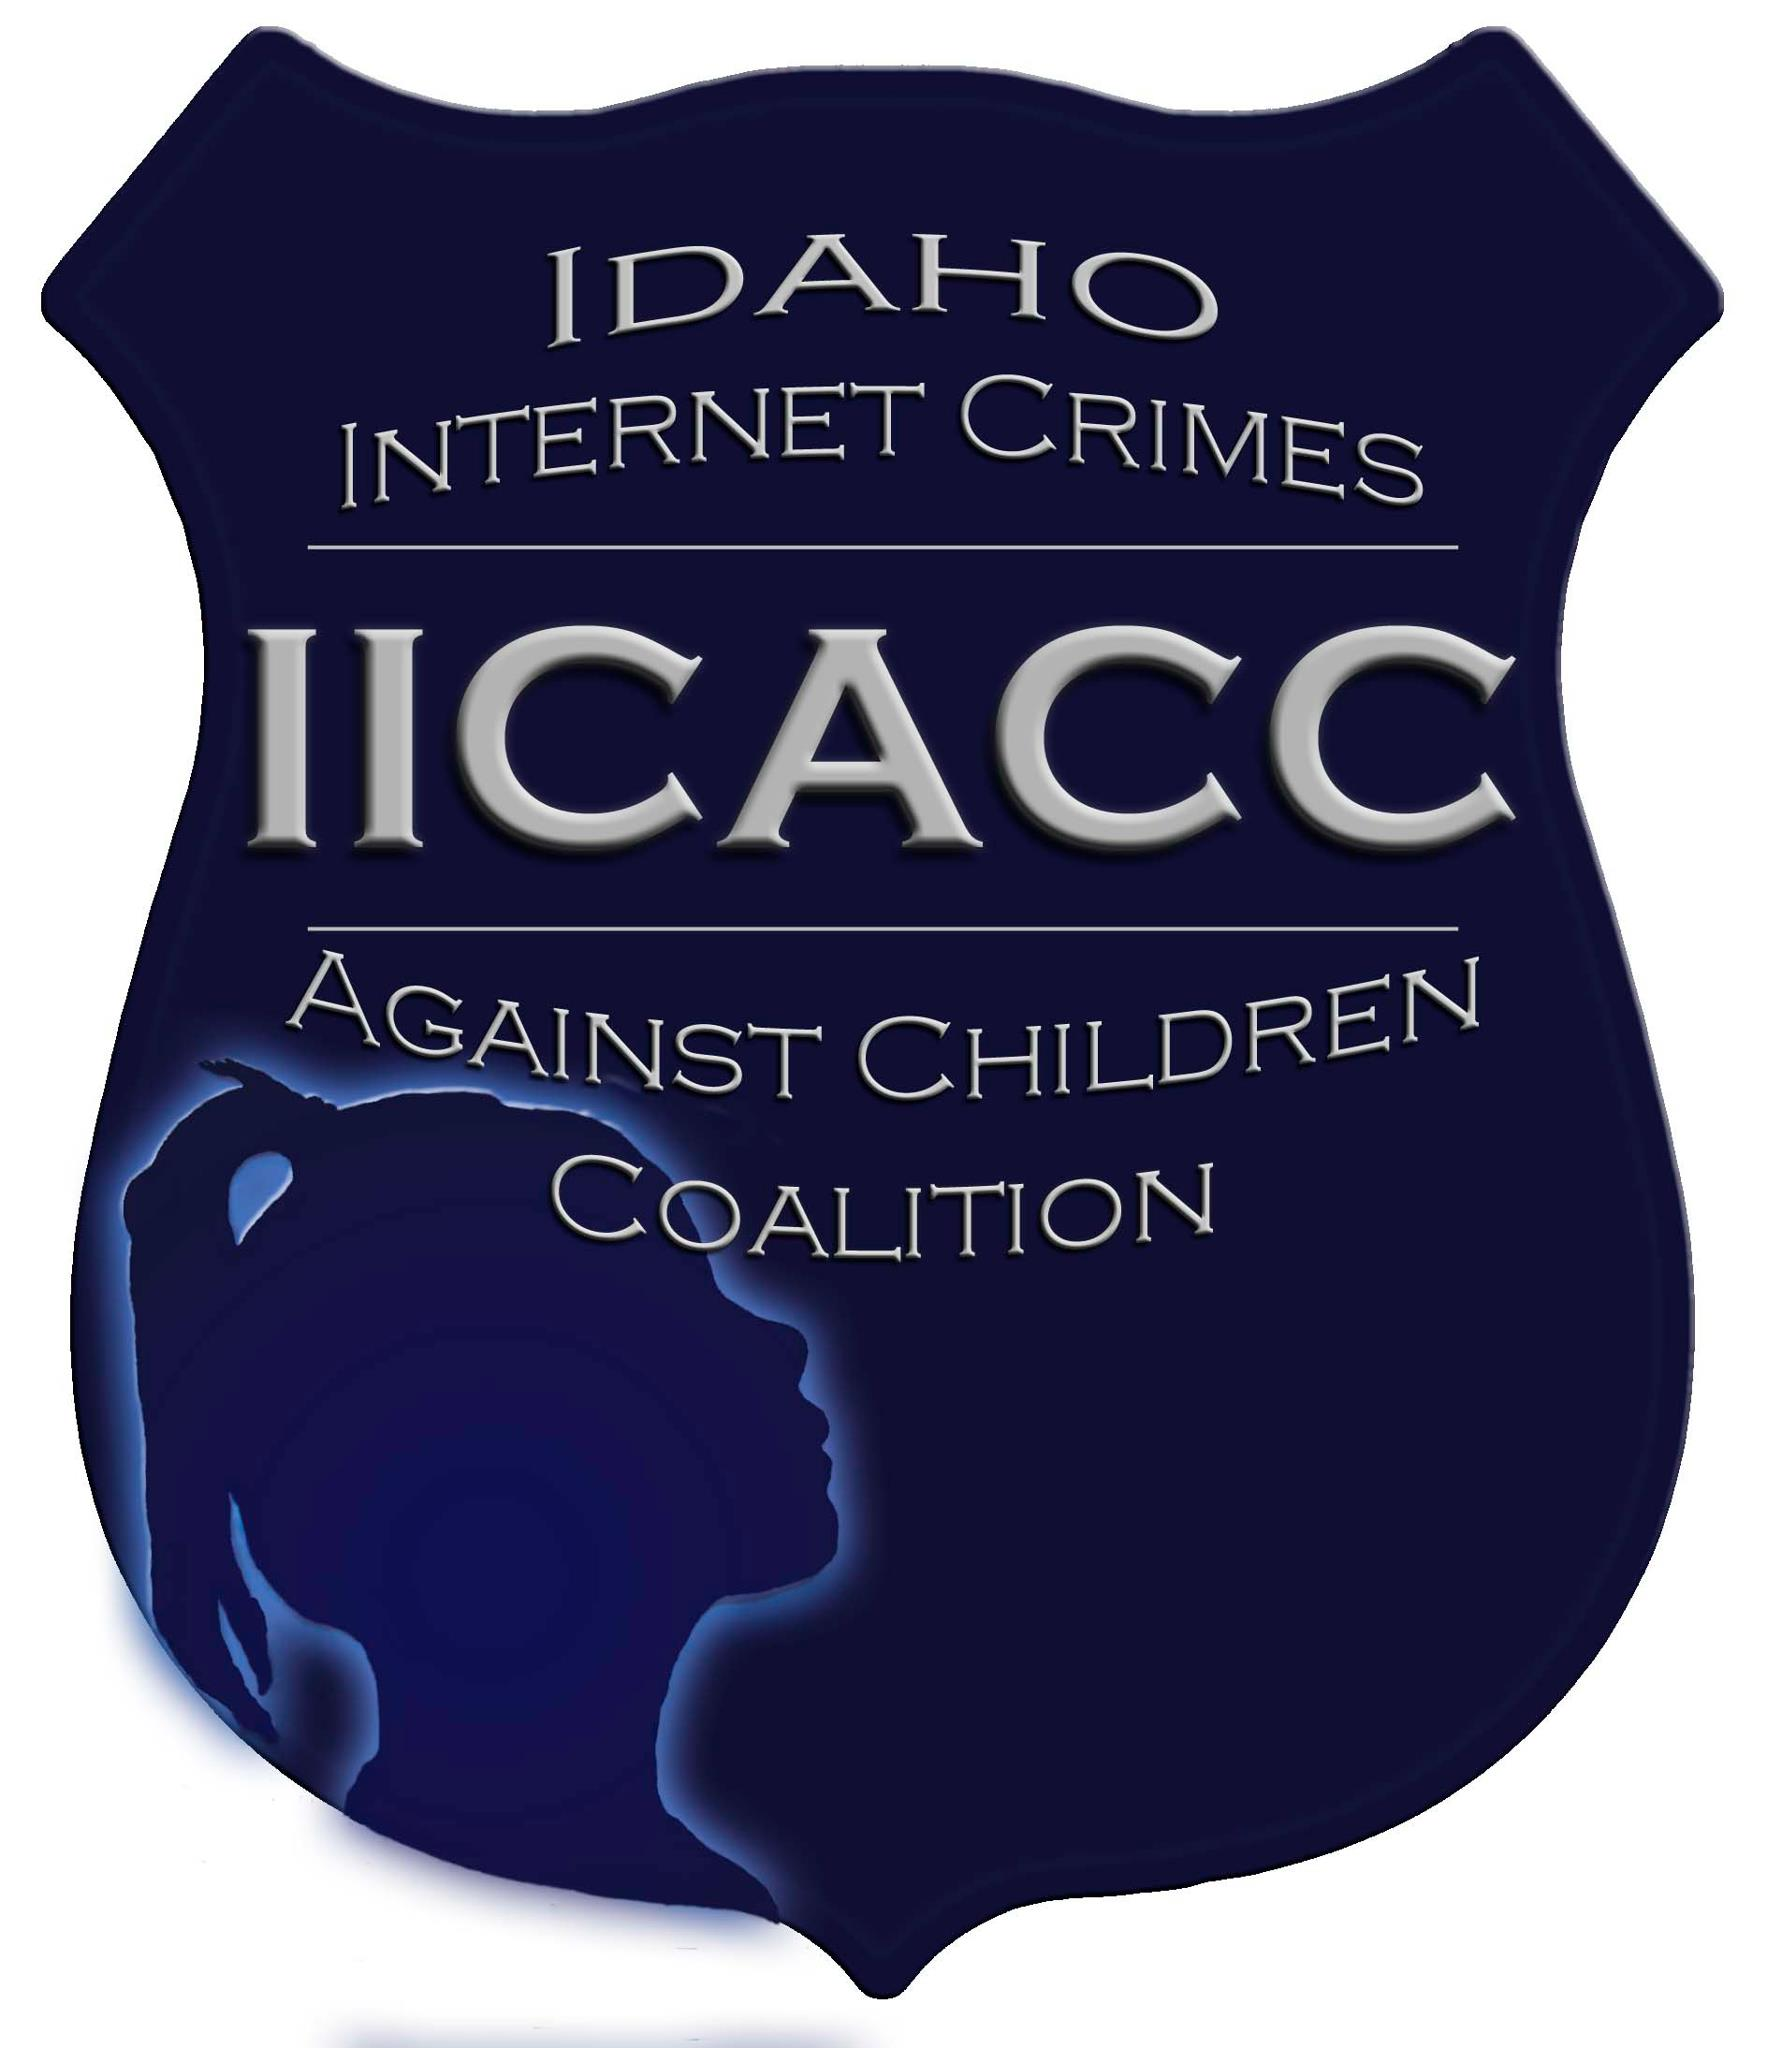 Idaho Internet Crimes against Children Coalition